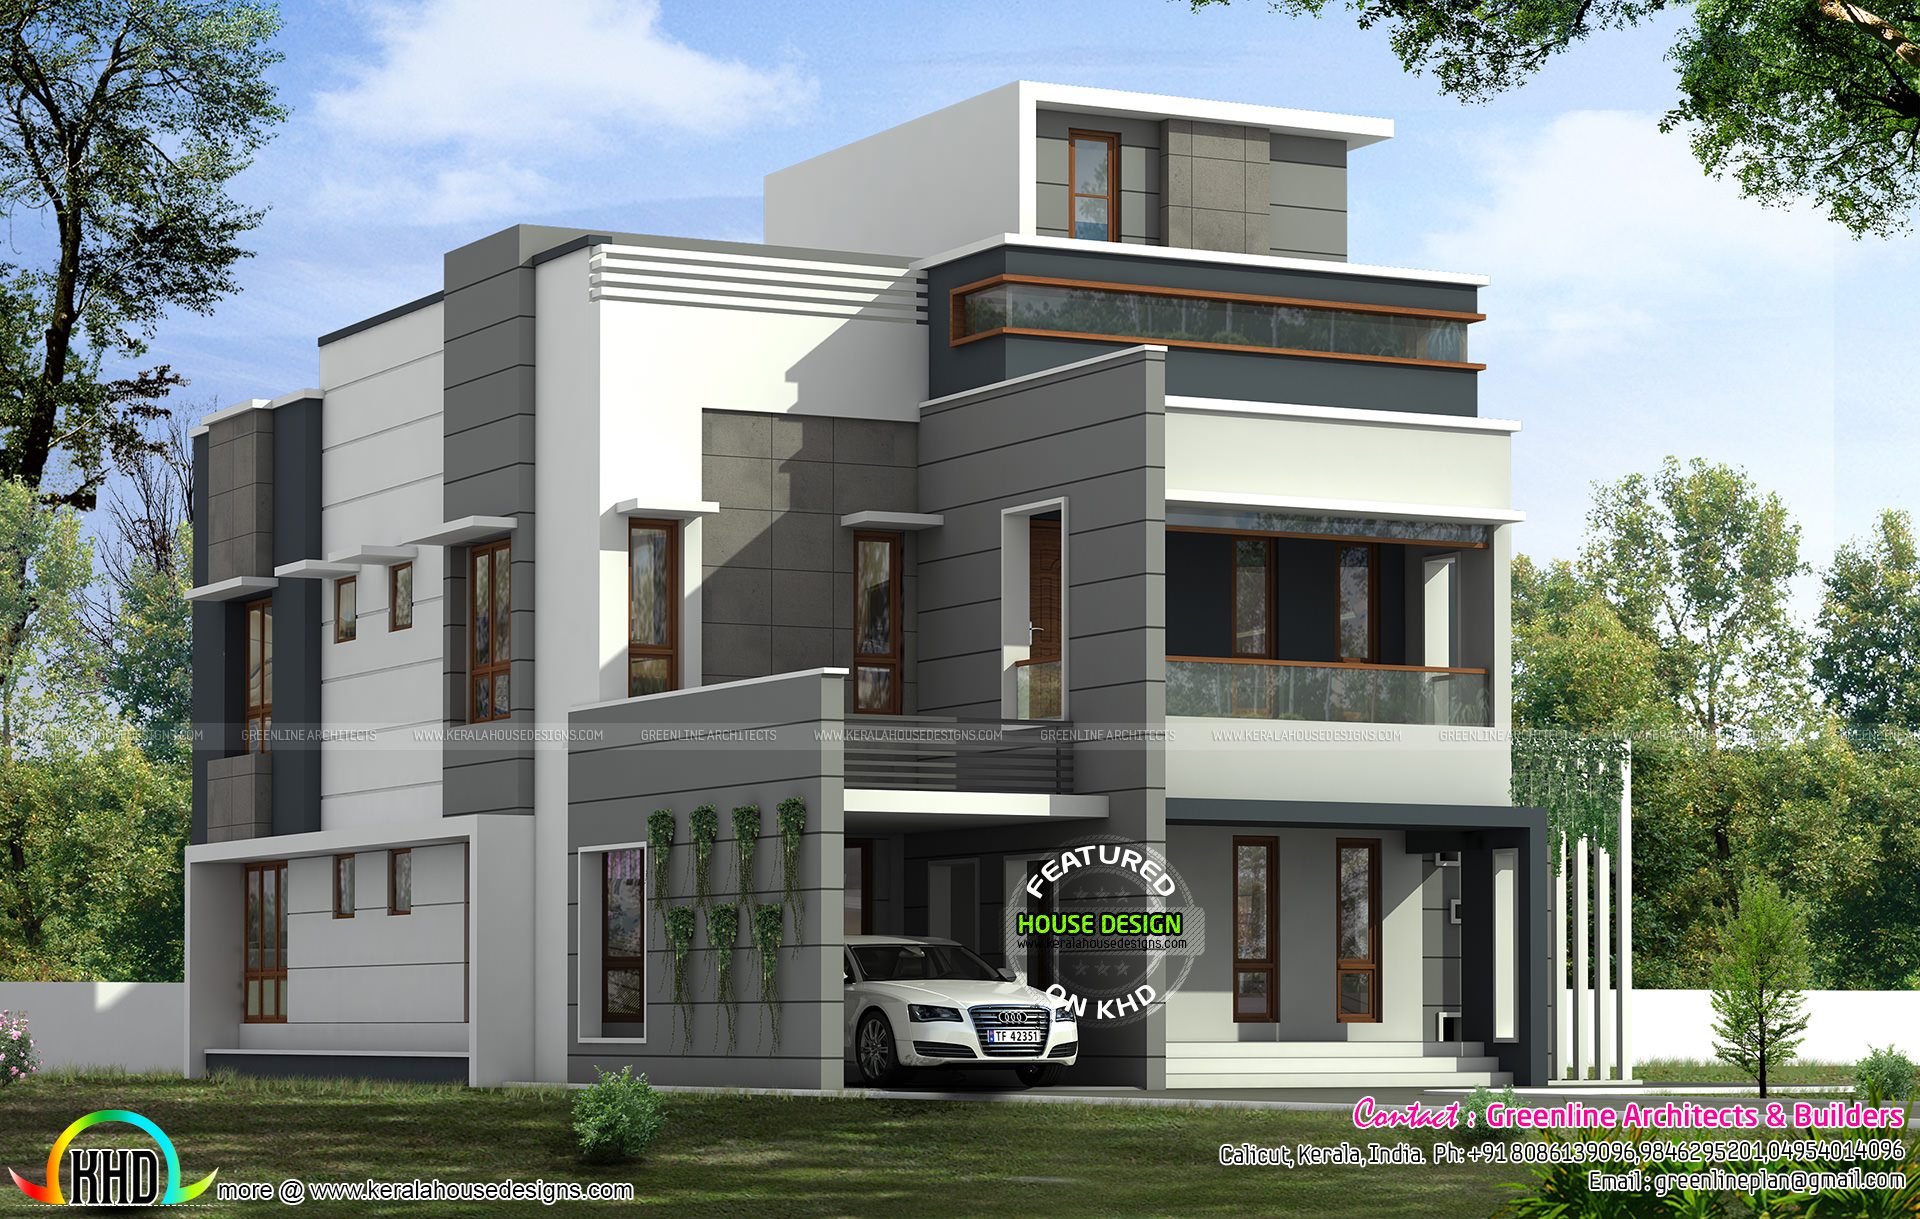 311 sq yd modern contemporary 5 bedroom house kerala for 5 bedroom modern farmhouse plans